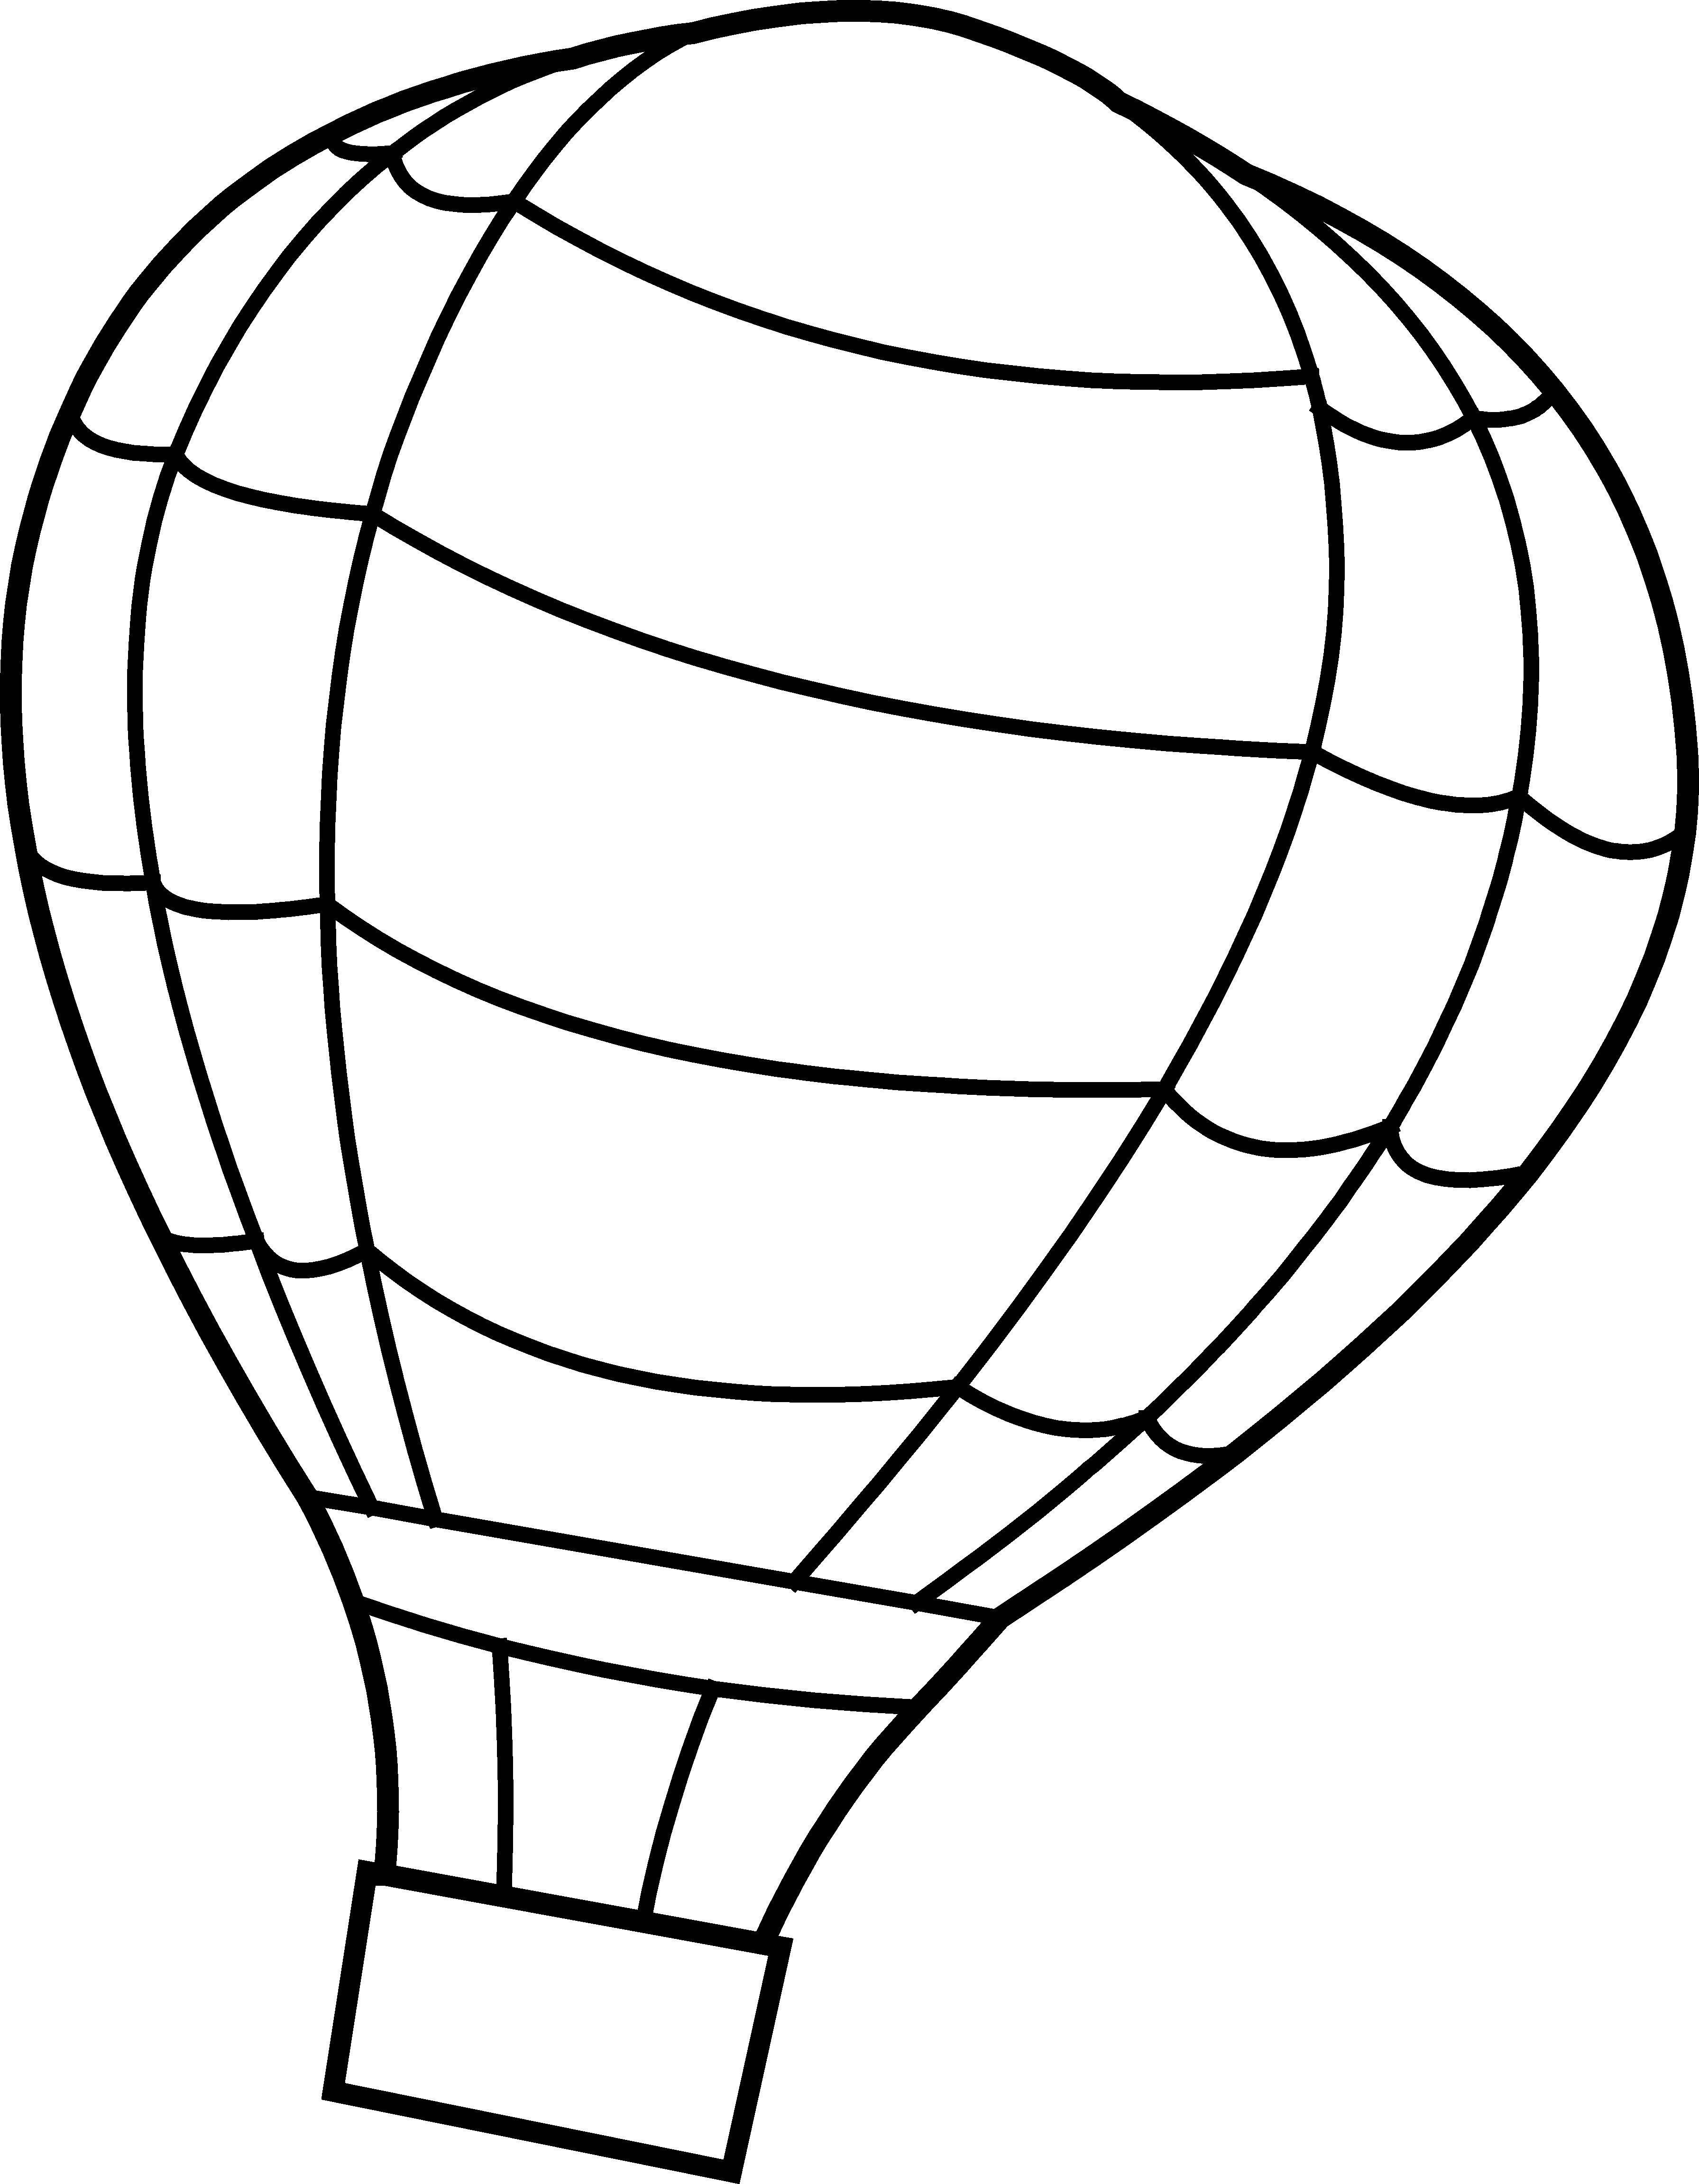 3583x4606 Hot Air Balloon Coloring Pages